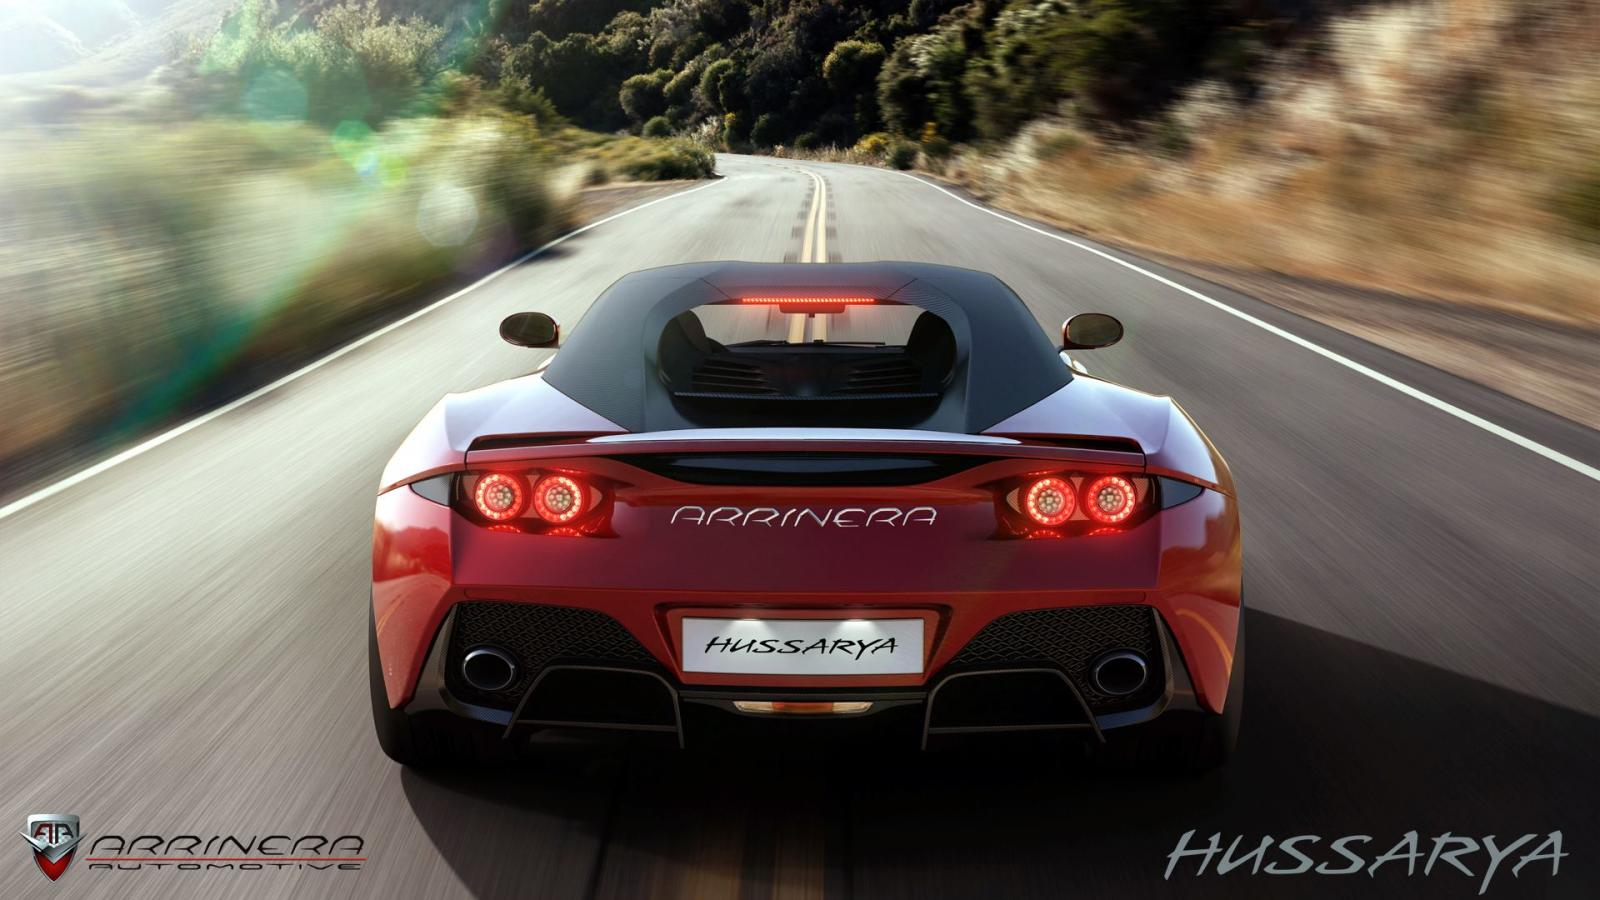 Arrinera Cars News Hussarya New Polish Supercar